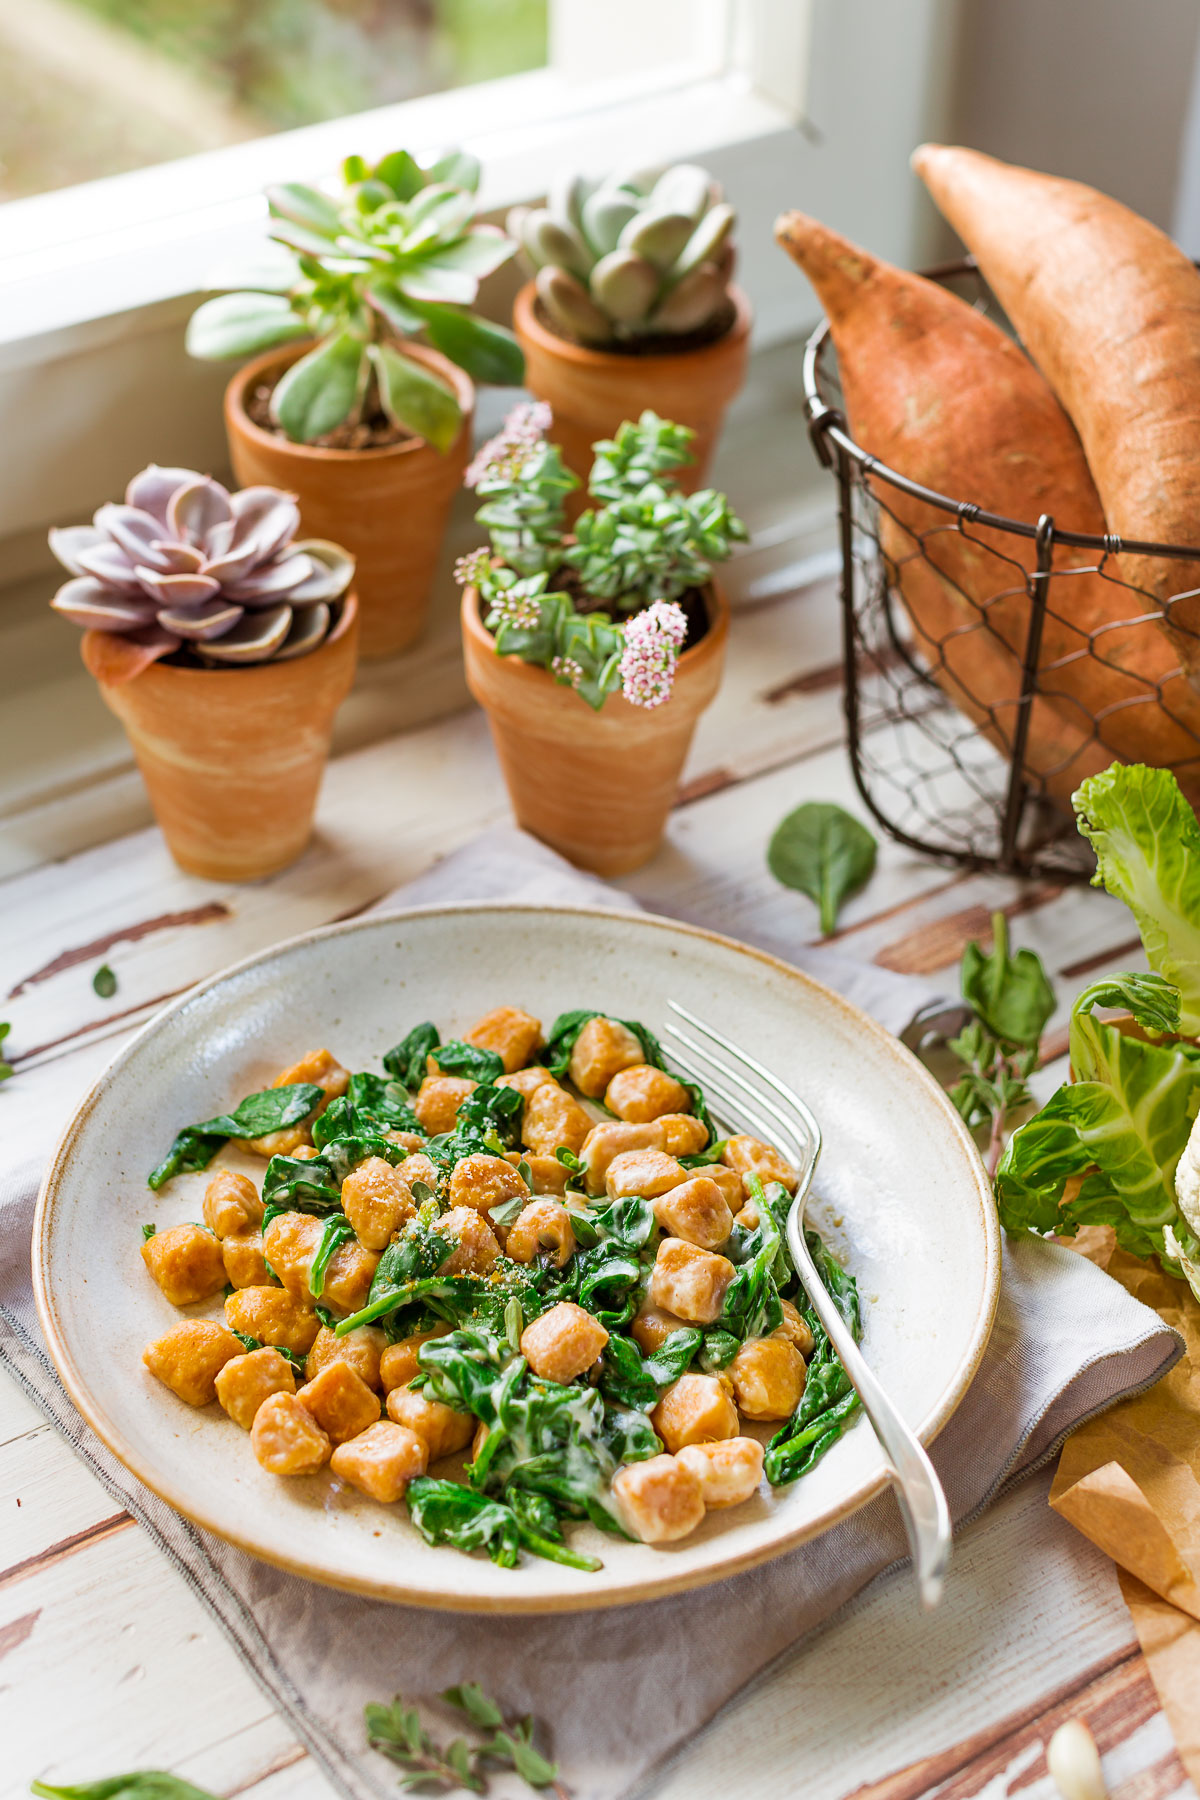 GNOCCHI DI PATATE DOLCI VEGAN di farro integrale con SALSA di CAVOLFIORE light vegan SWEET POTATO GNOCCHI with CAULIFLOWER SAUCE and spinach #sweetpotato #vegan #cauliflower #gnocchi